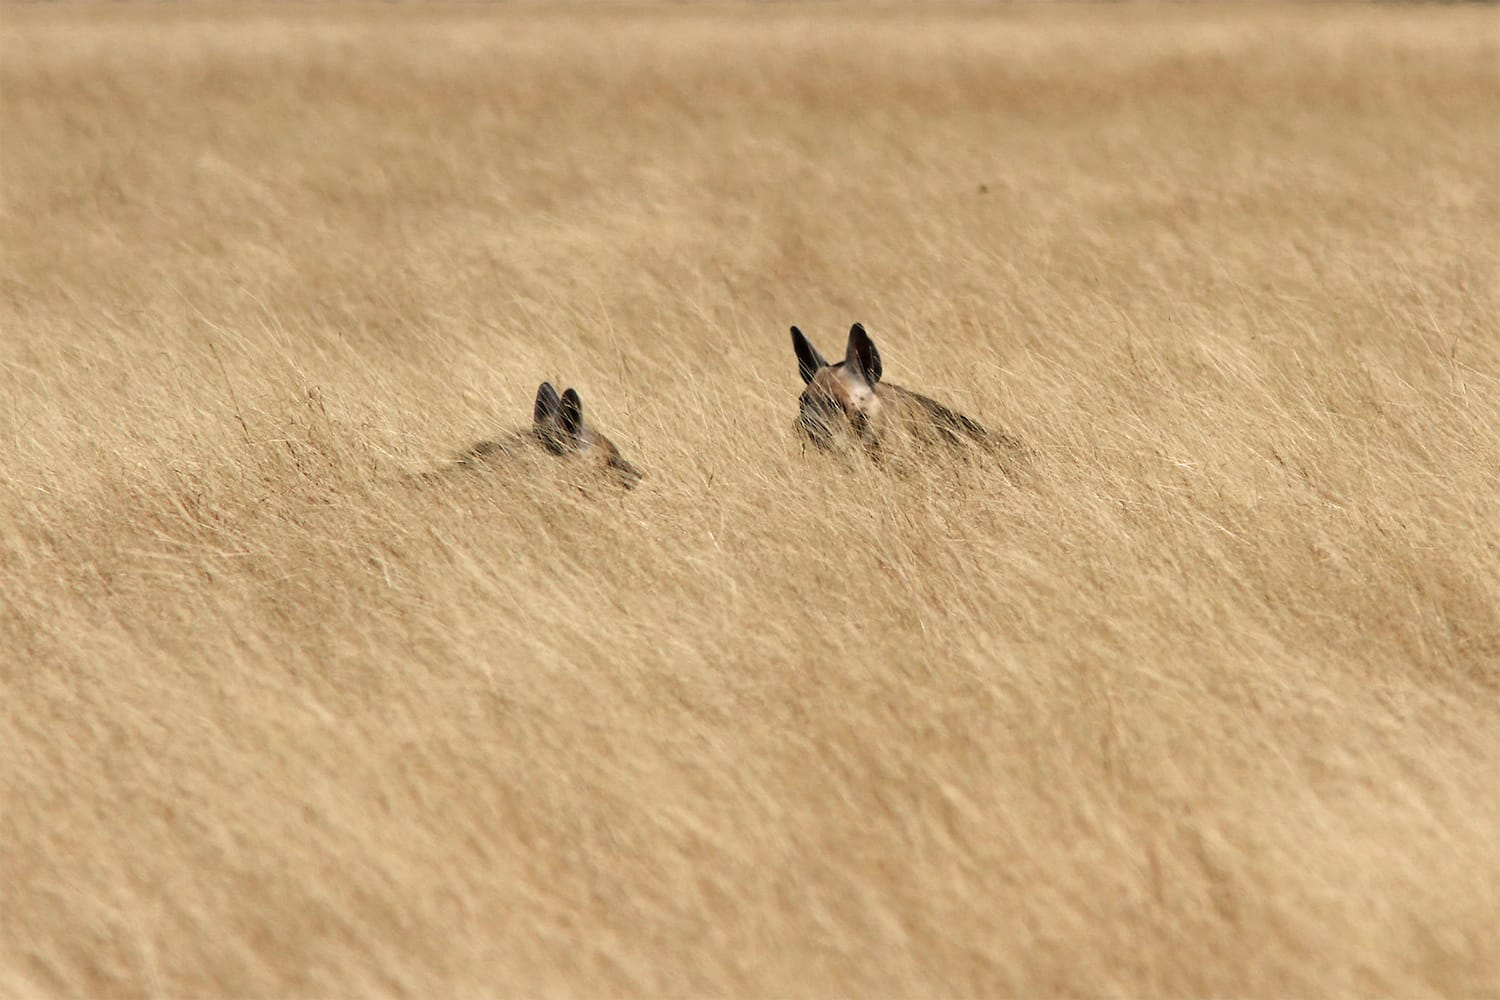 With a brown coat and dark stripes, hyenas can easily camouflage themselves when they want to stay hidden in the tall, golden grasses of the Blackbuck National Park, Velavadar. Photo: Shreeram MV